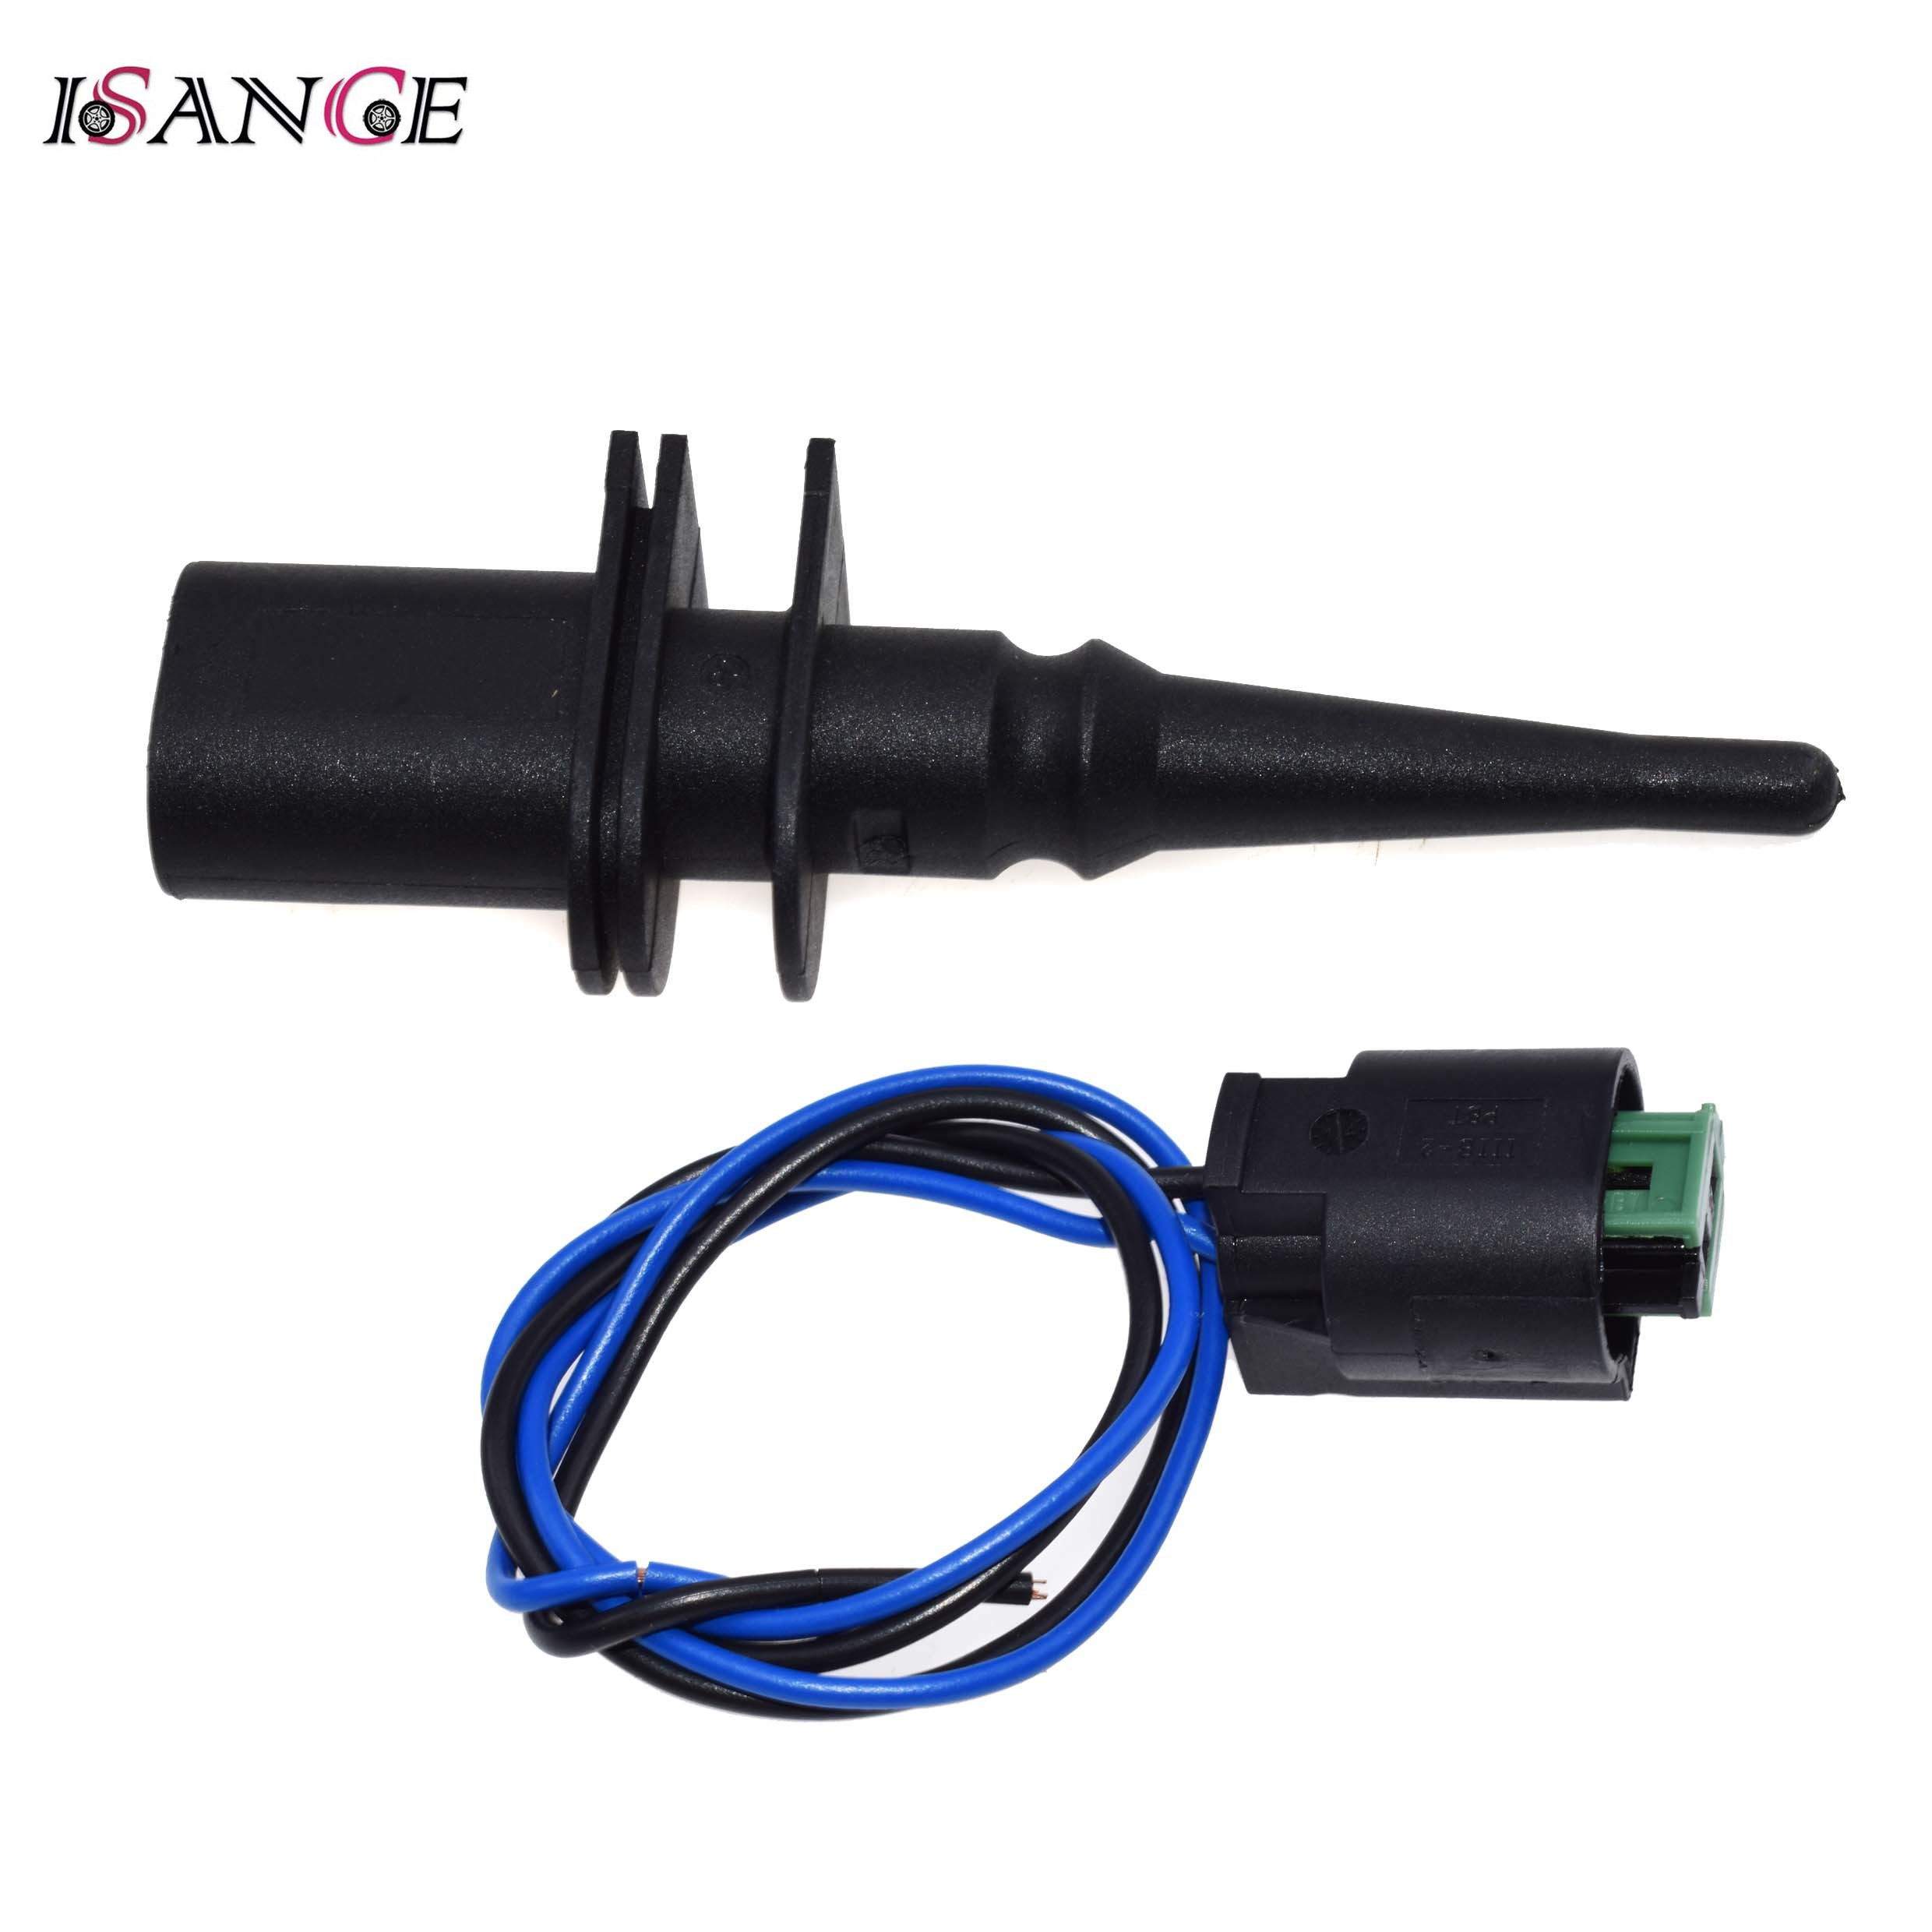 Coolant Temperature Sensor fits BMW 540 E39 4.4 96 to 04 Sender Transmitter Febi